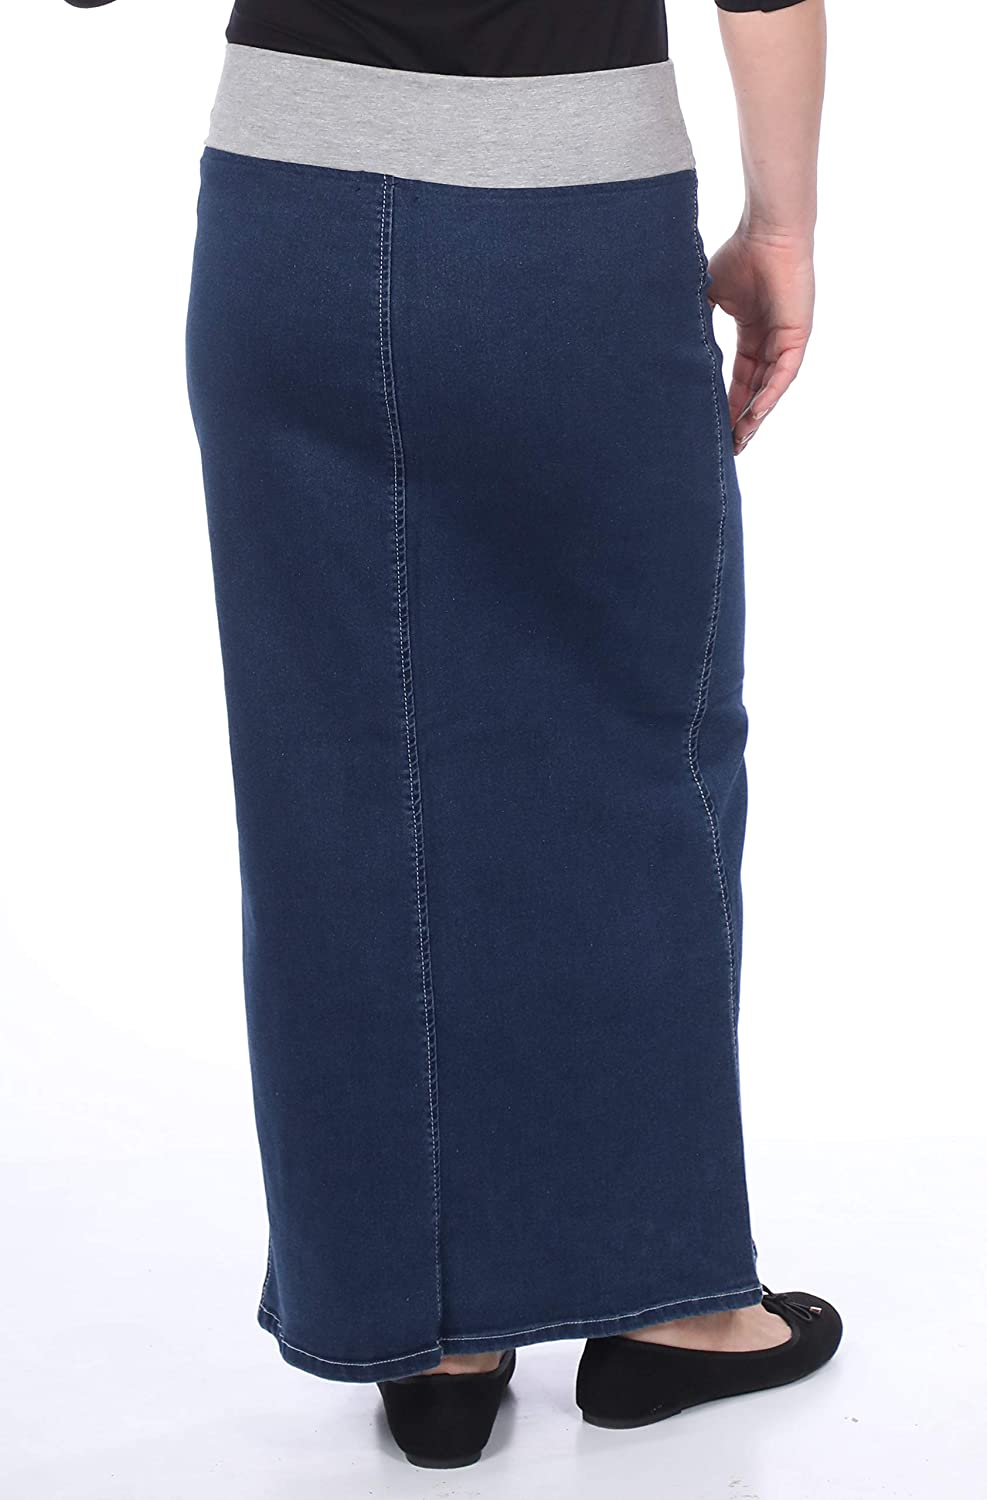 50d13139e2 Kosher Casual Women's Long Denim Skirt With Stretch Waistband: Amazon.ca:  Clothing & Accessories